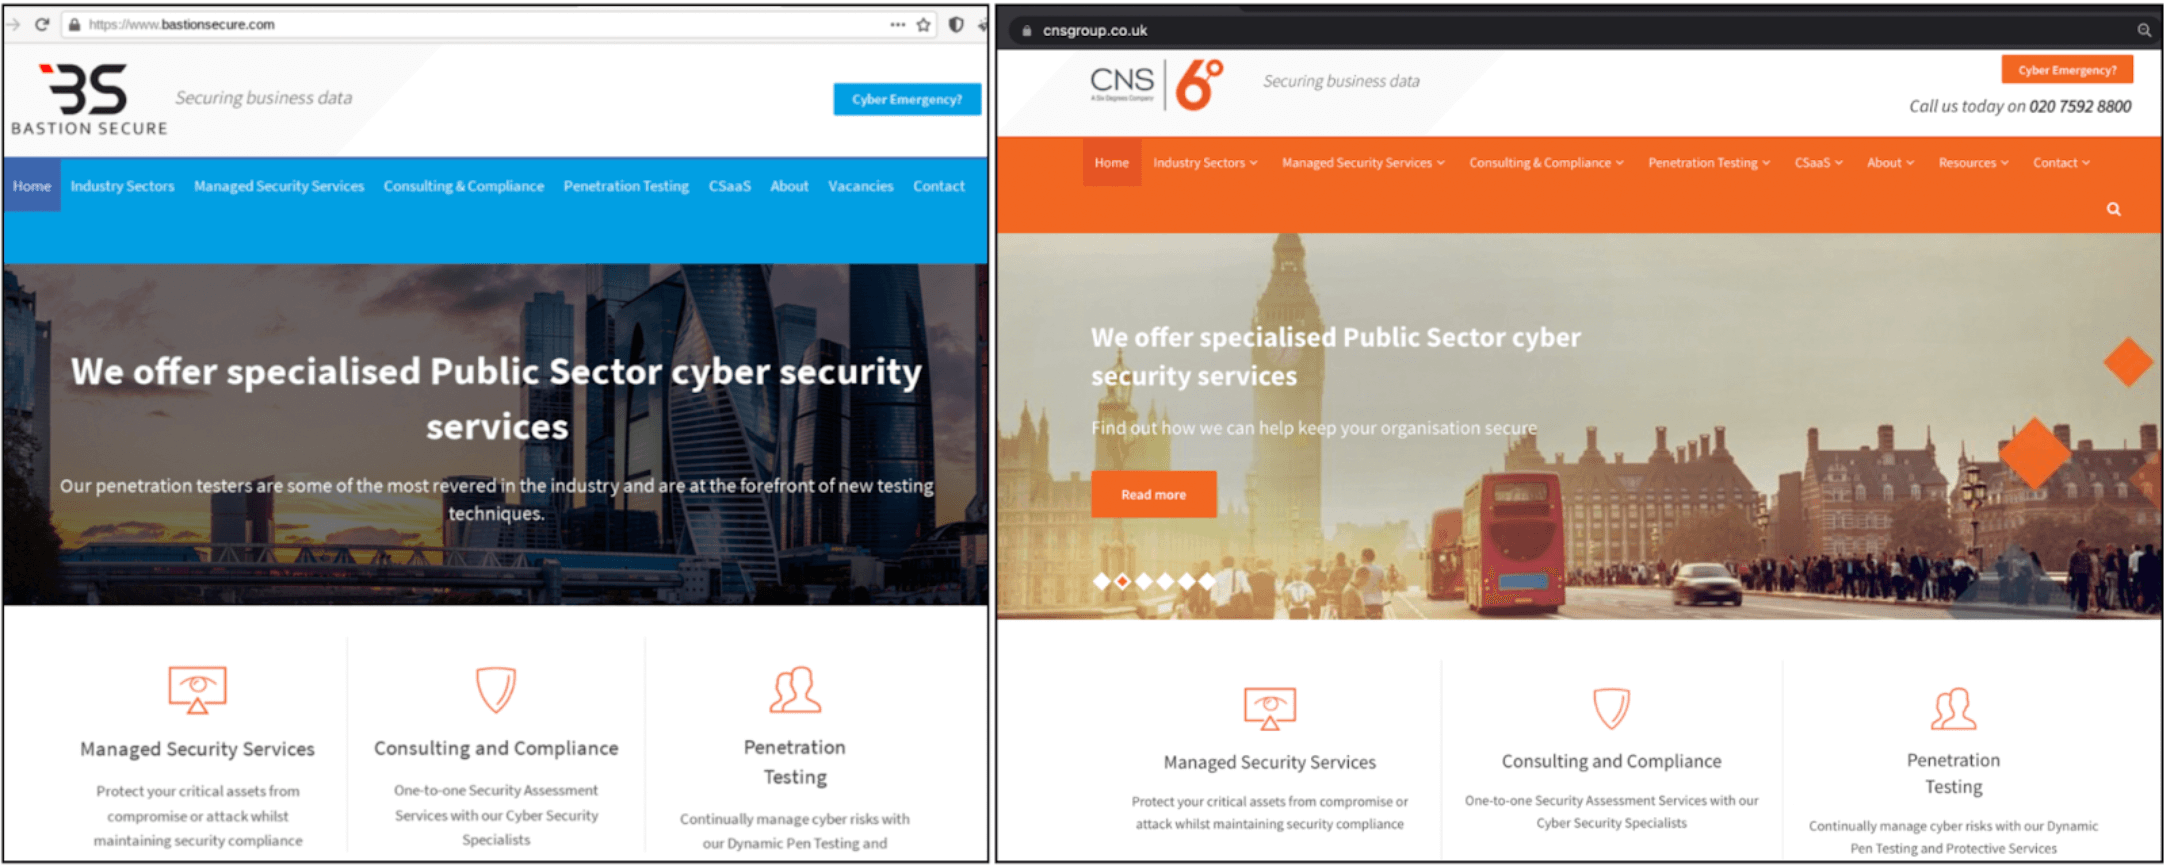 FIN7 cybercrime gang creates fake cybersecurity firm to recruit pentesters for ransomware attacks